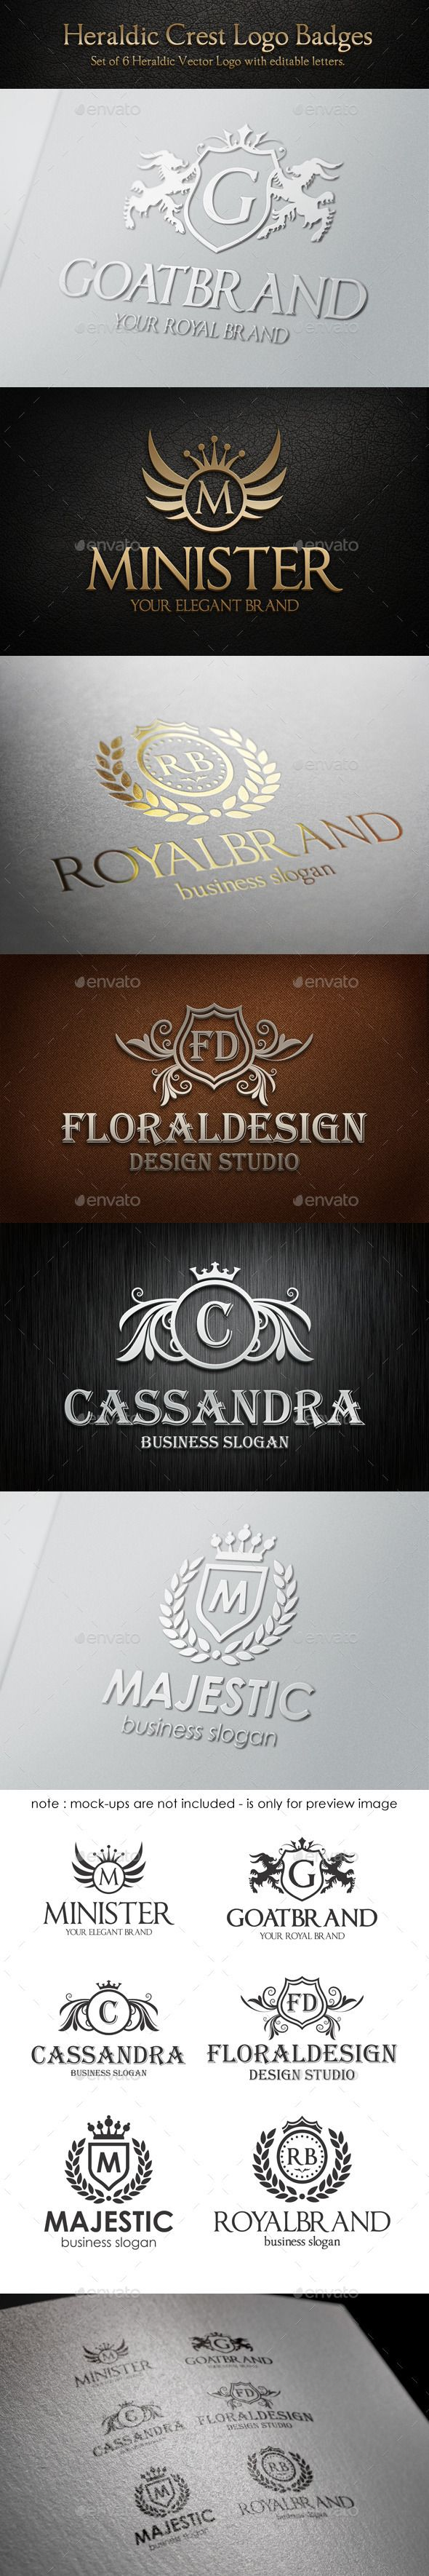 Heraldic Crest Logo Badges Collection – Set of 6 Heraldic Vector Logos with editable letters.  Luxurious Heraldic Coat of Arms – Royal Brand Crest Logos. Classy Elegant Badge Logo Templates. ( All text is editable ). An excellent logo templates highly suitable for Real Estate, Boutique, Leisure business, Luxury restaurant, Sports club, Trading center, Fashion and clothing businesses.